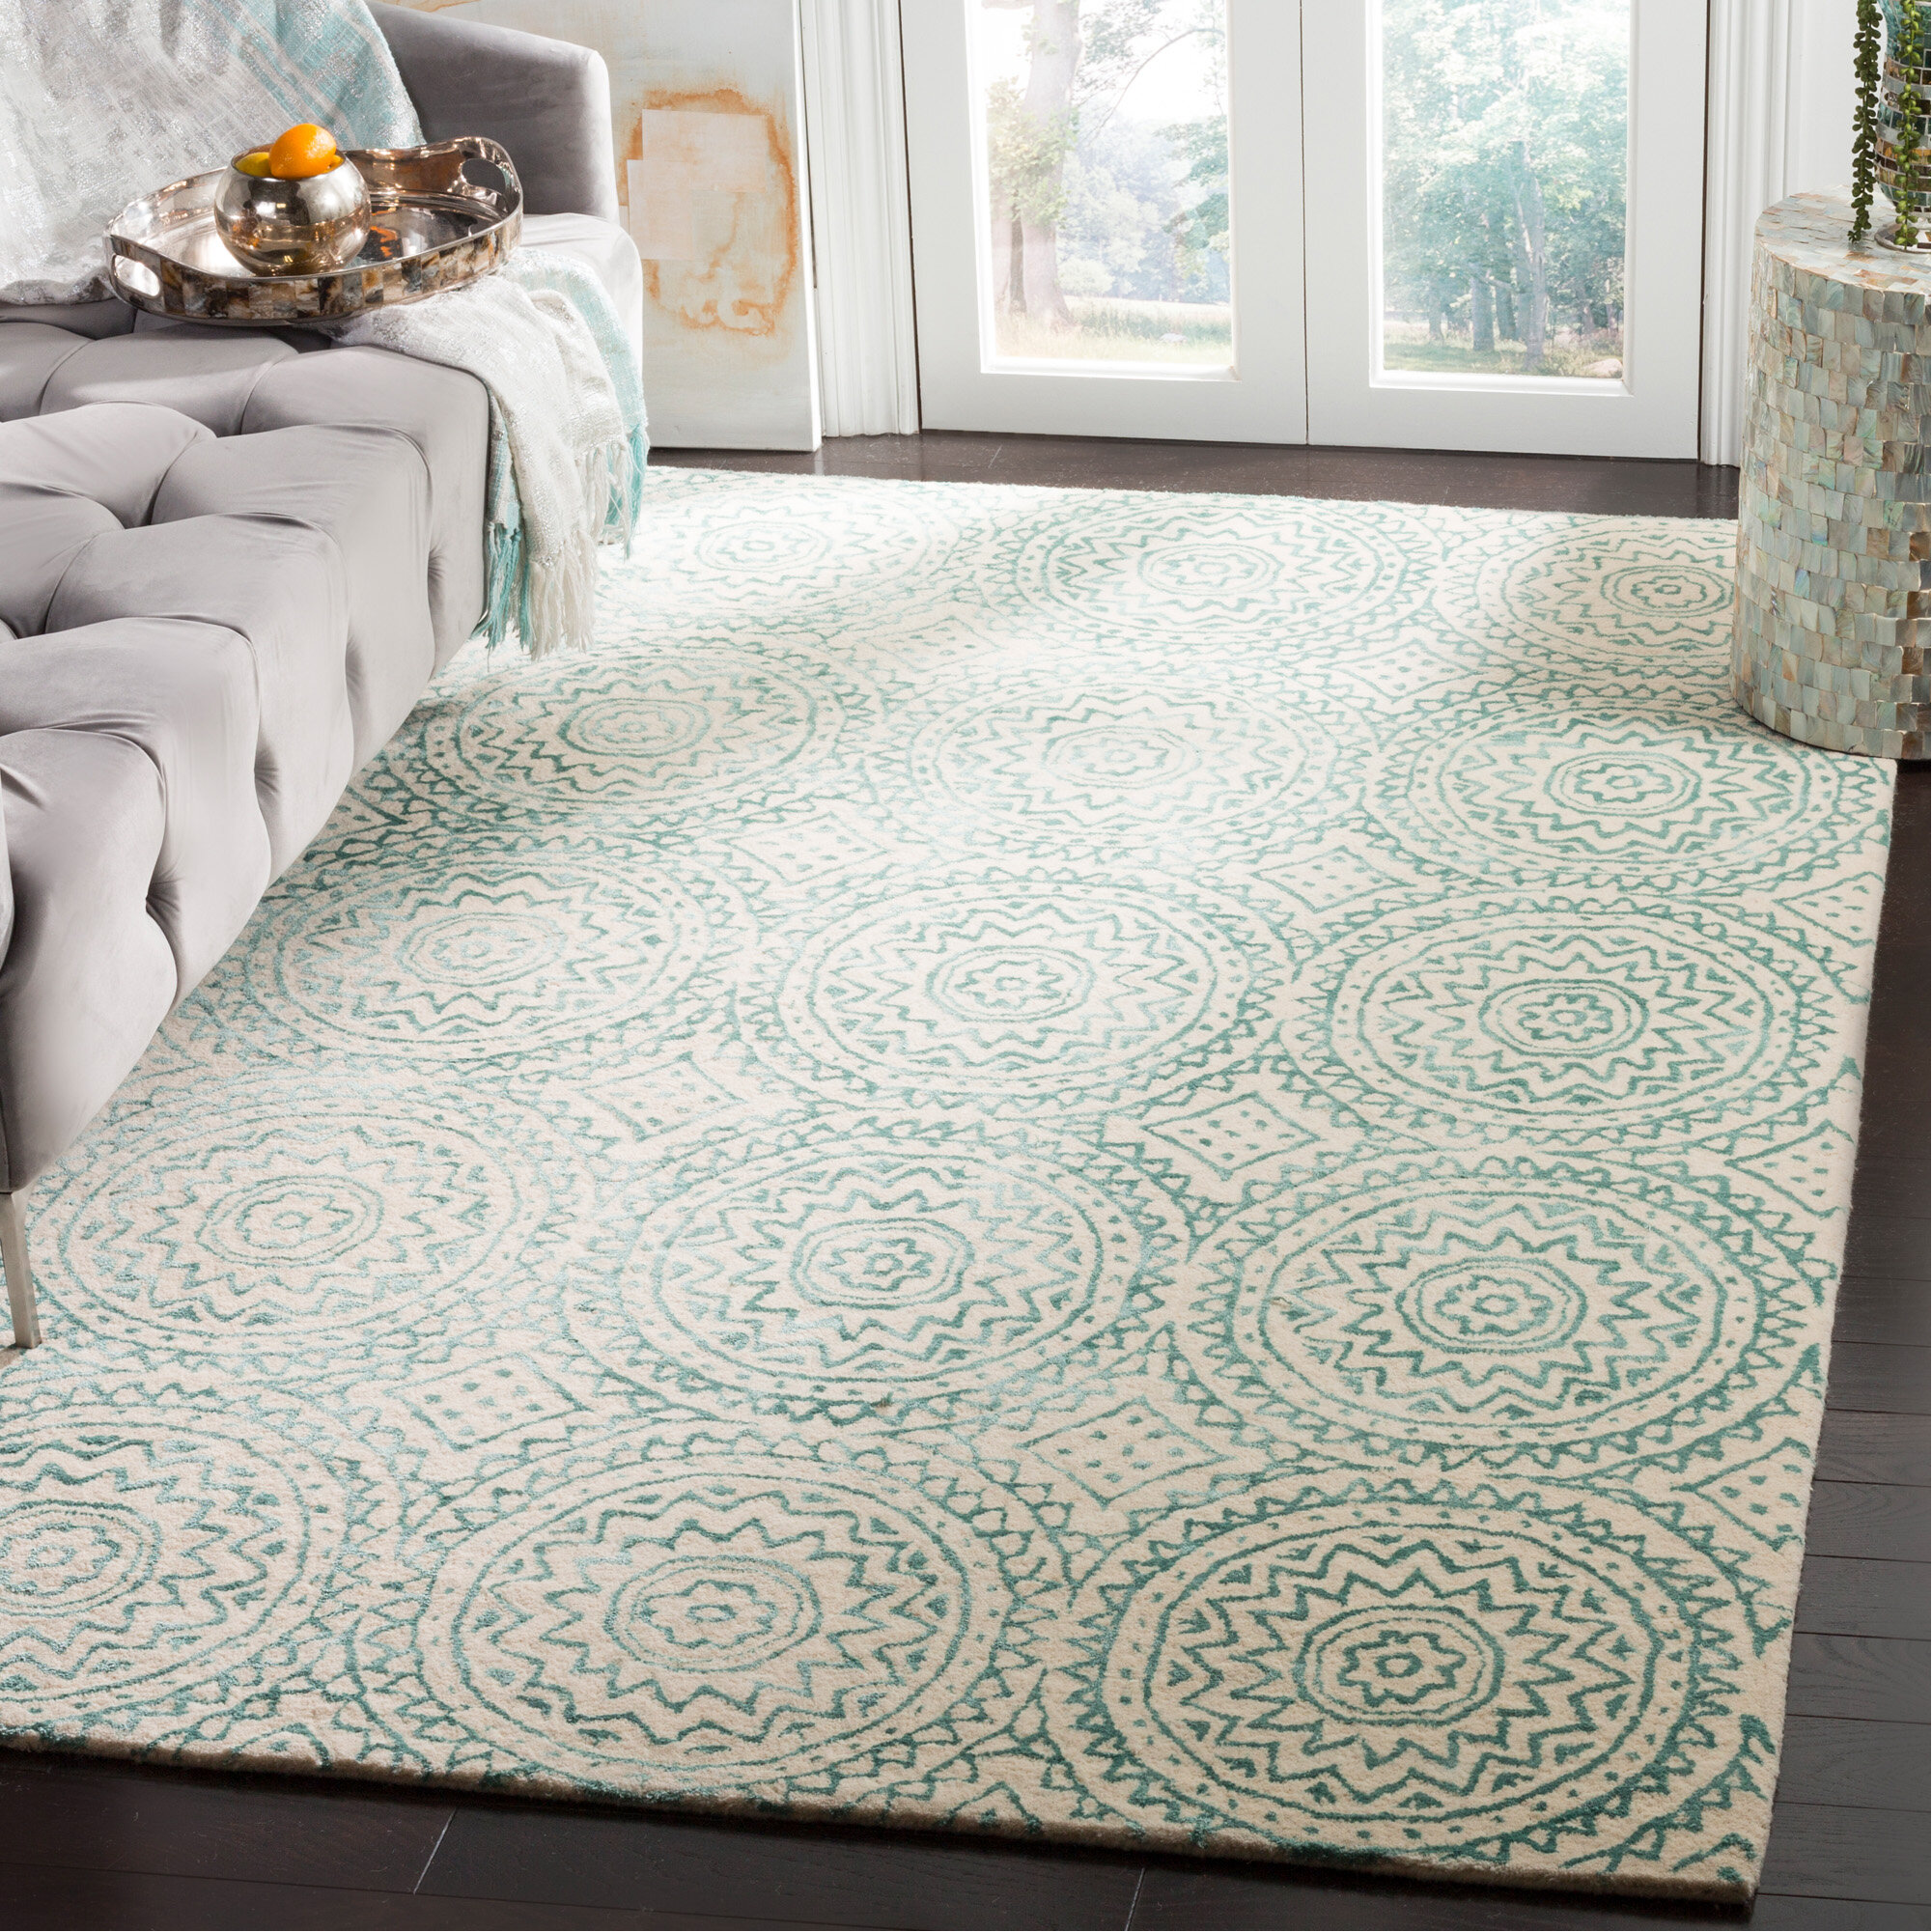 Winston Porter Mccullough Hand Tufted Wool Sage Green Beige Area Rug Reviews Wayfair